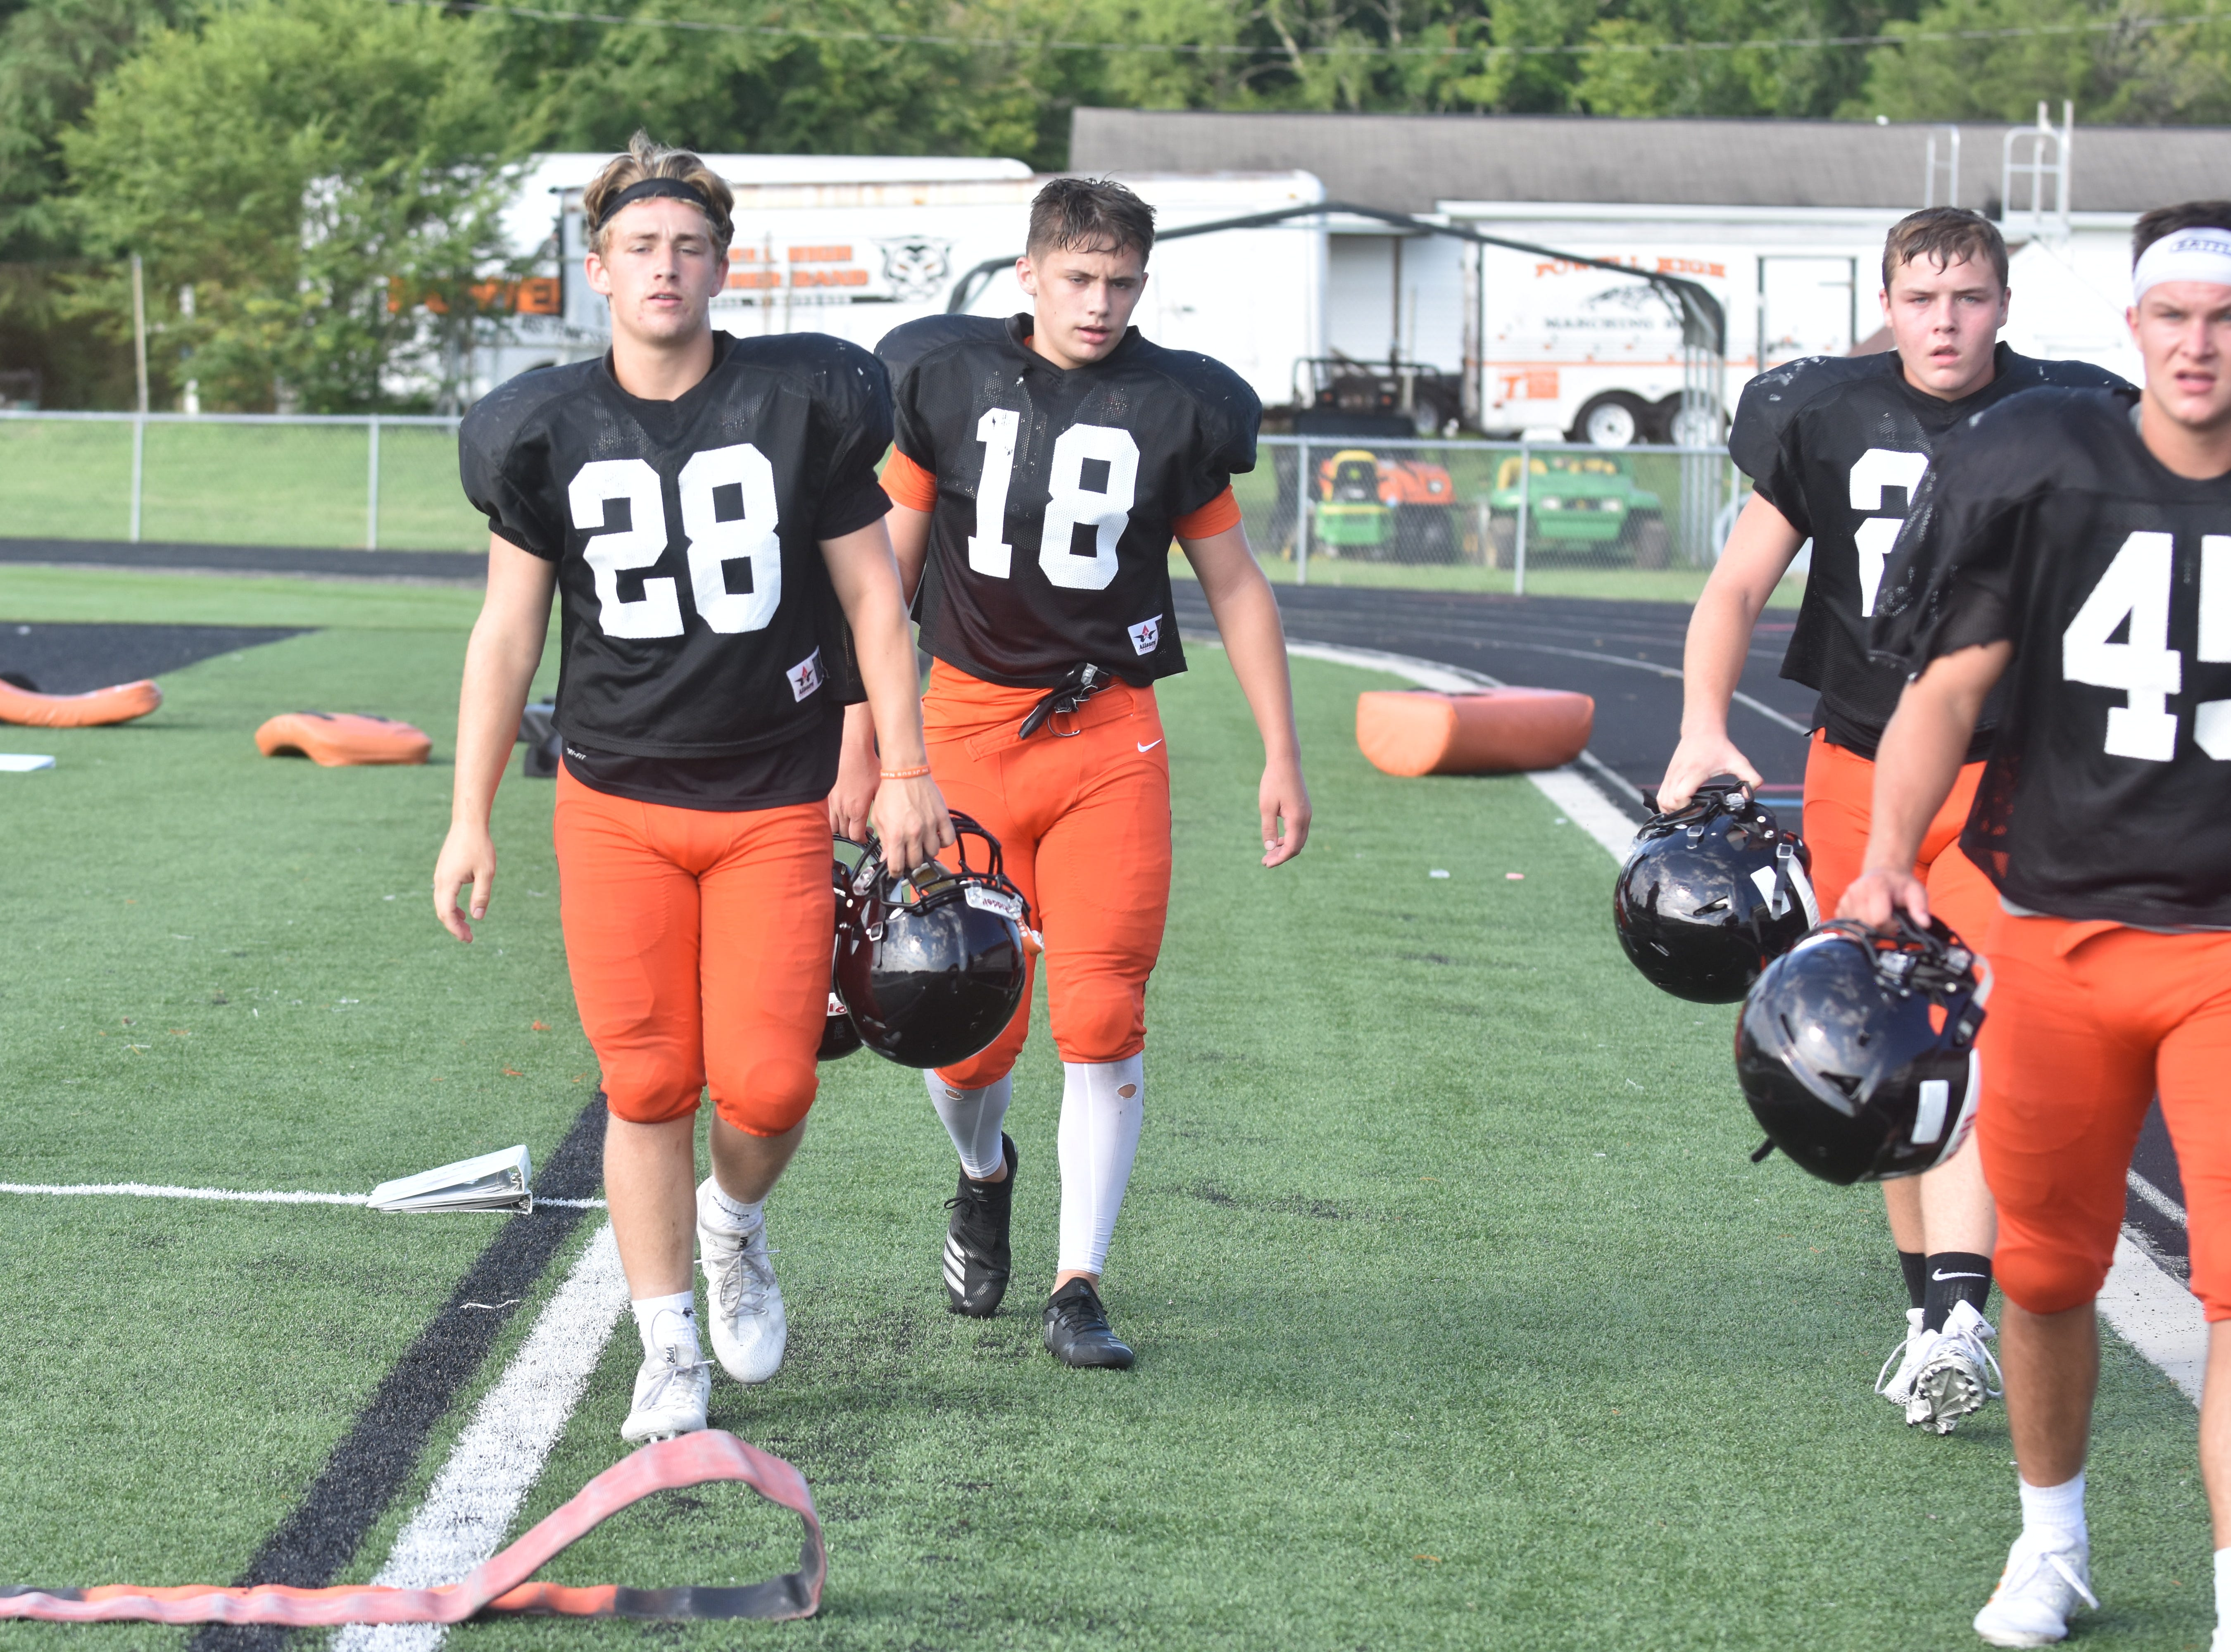 Powell football players take a break from running drills during a recent practice.